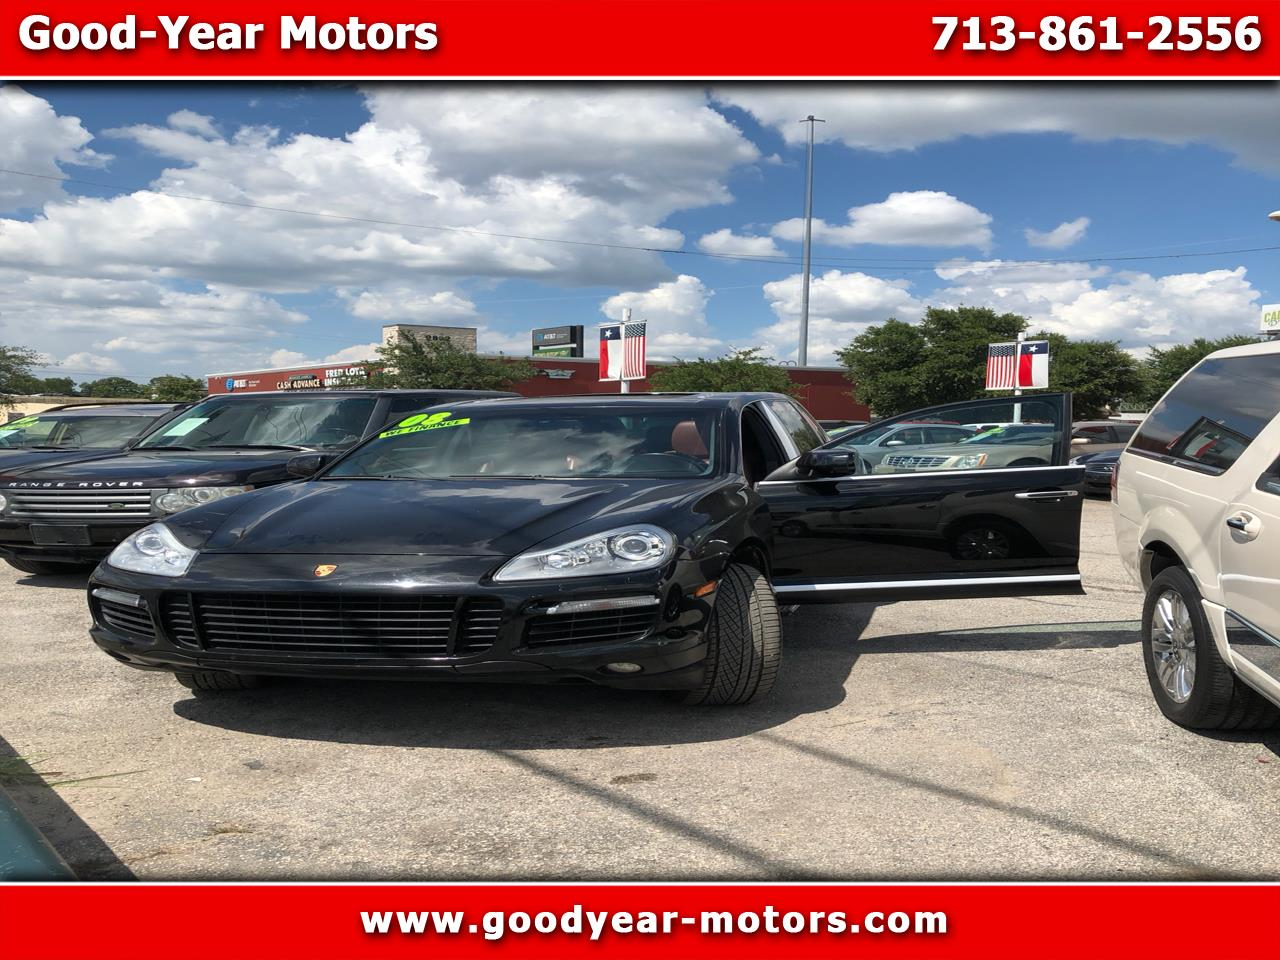 Car Lots In Houston >> Used Cars For Sale Houston Tx 77008 Good Year Motors